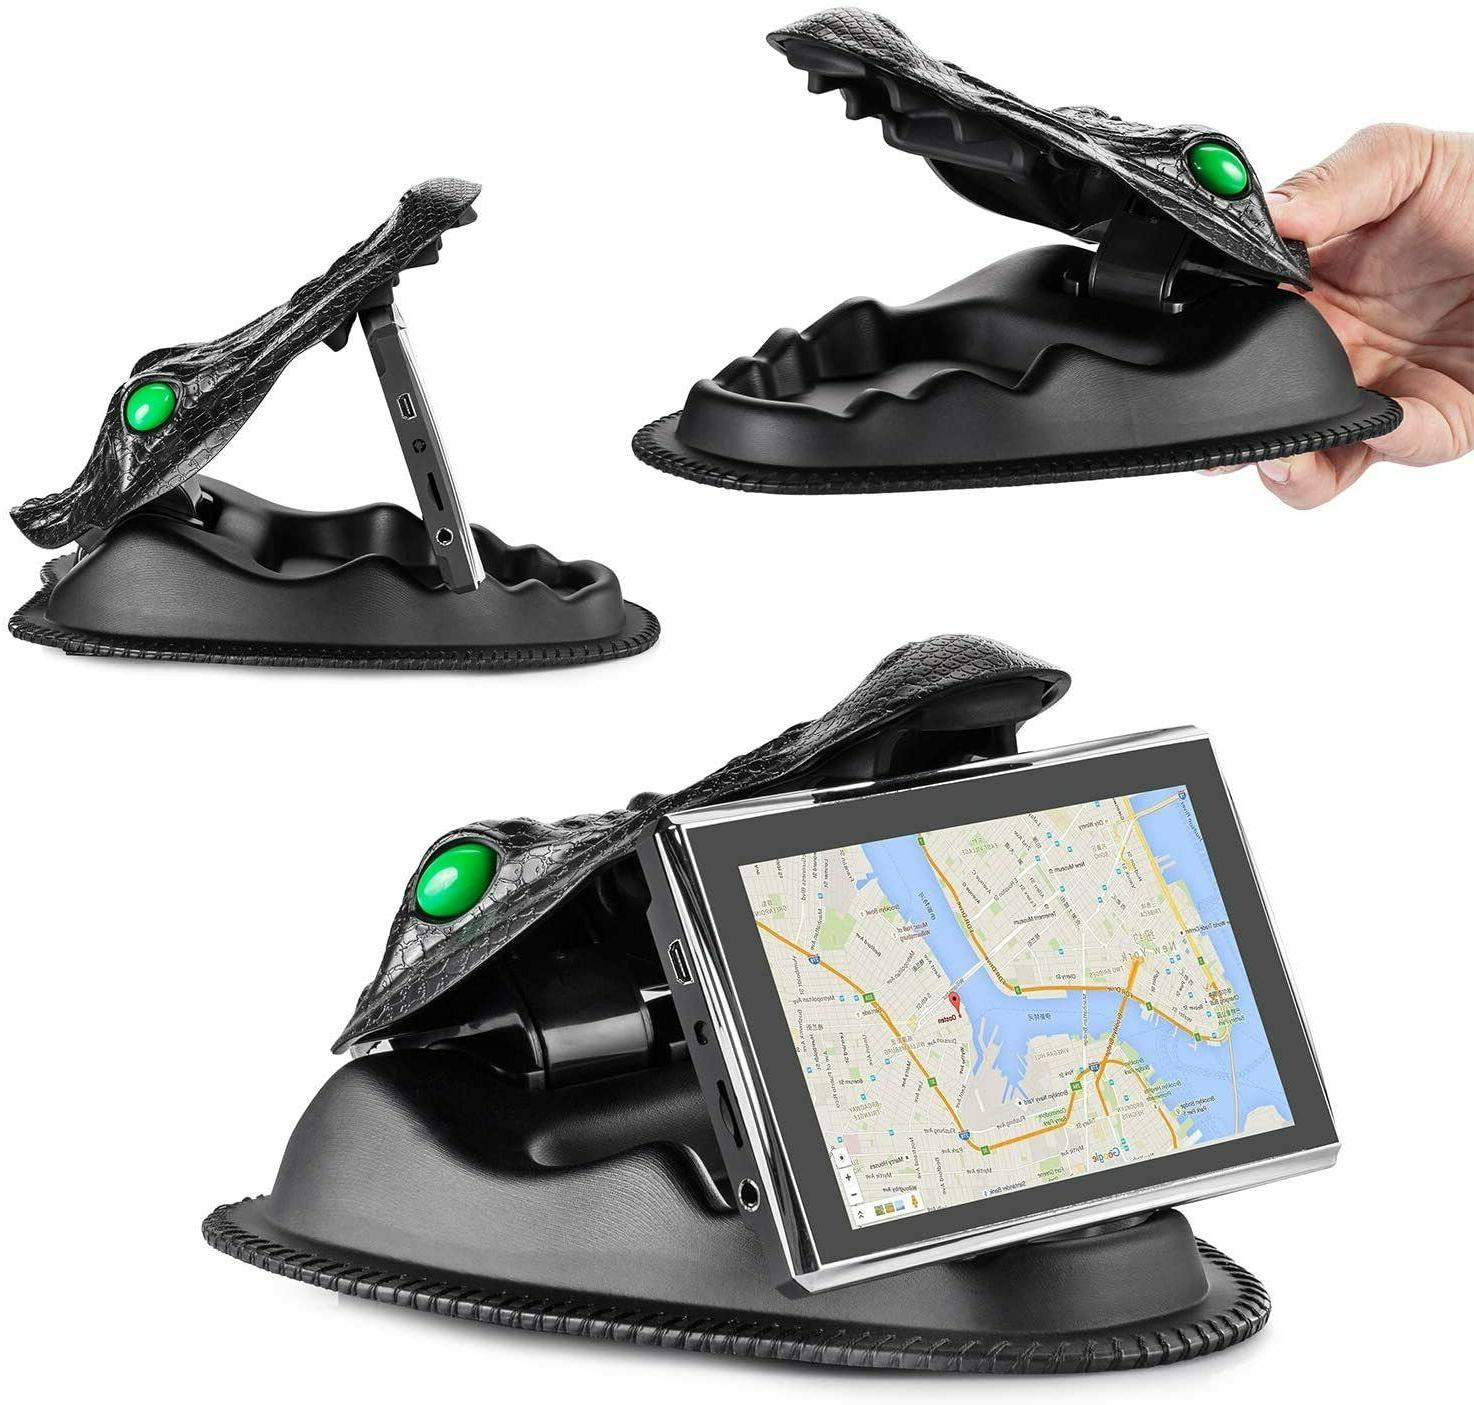 Gps Dash Nuvi Bean Portable Holder Stand